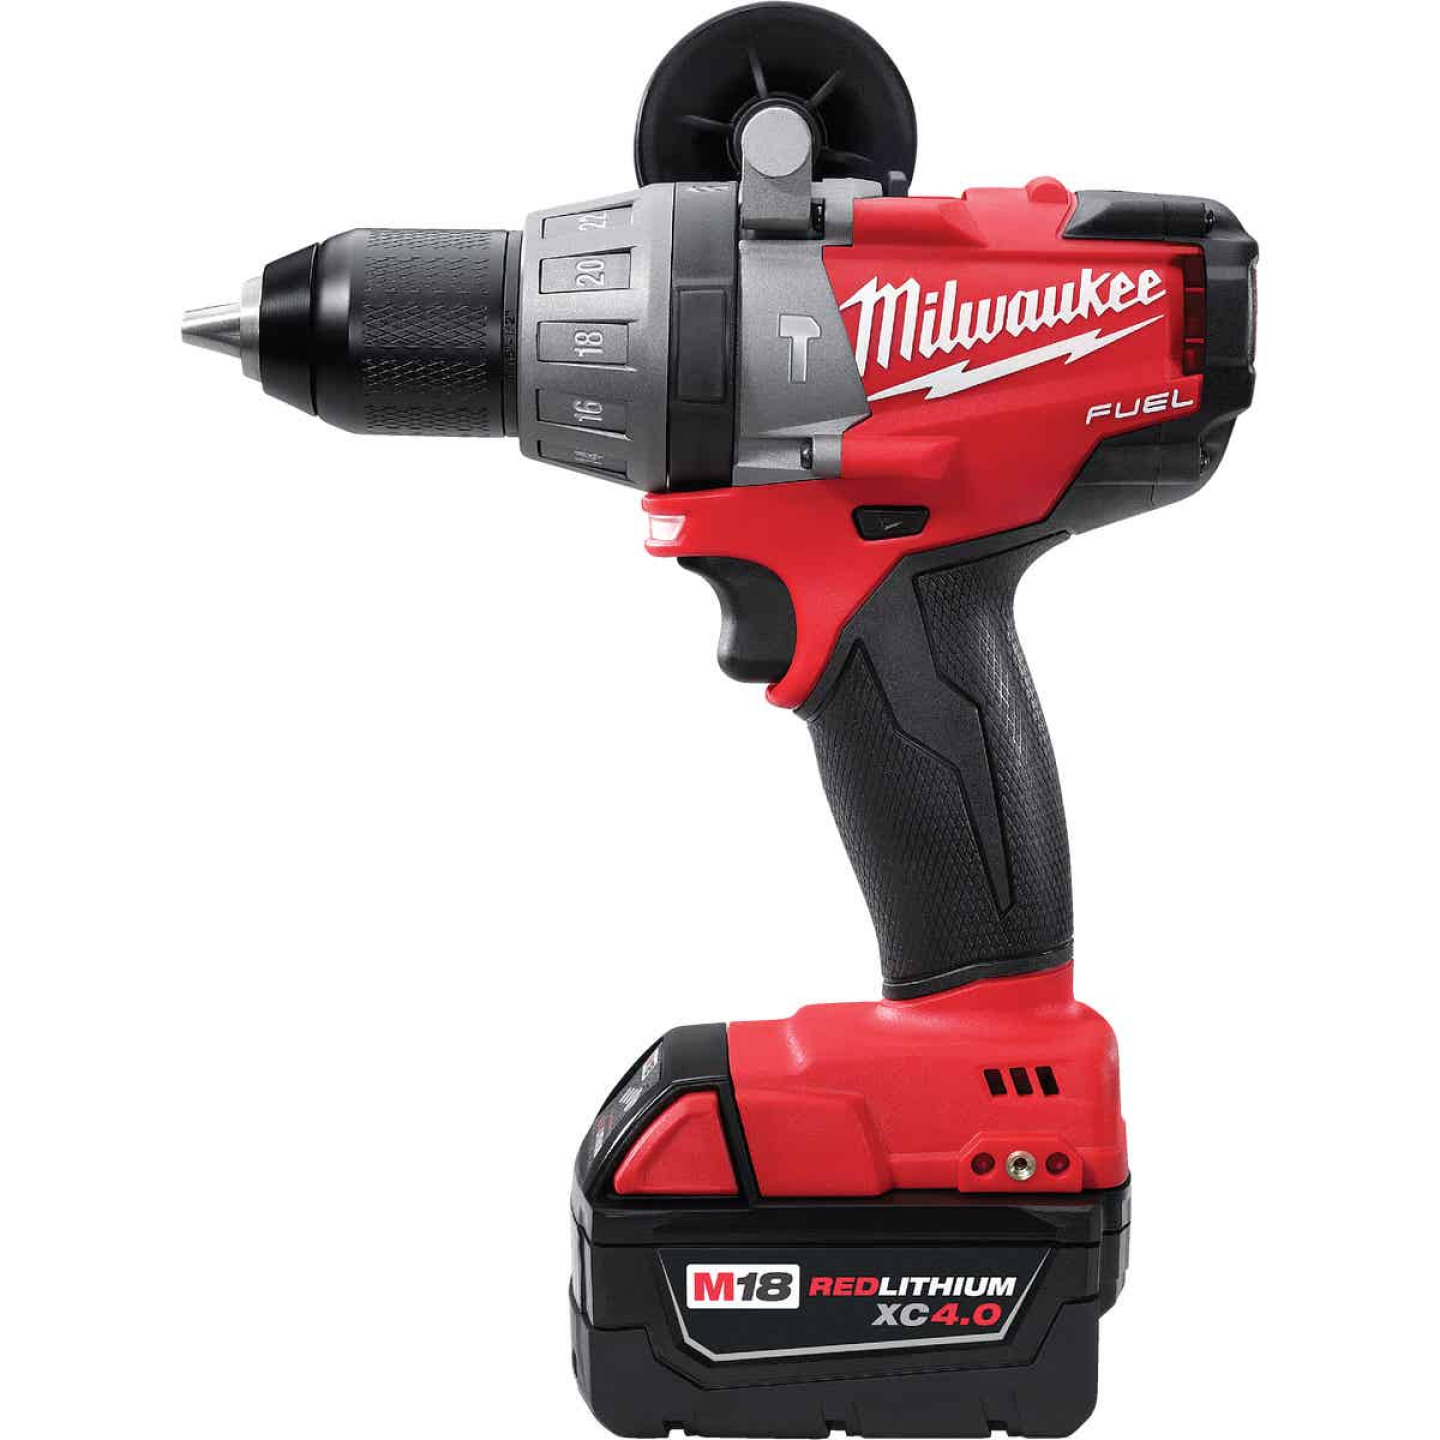 Milwaukee M18 FUEL 18-Volt XC Lithium-Ion Brushless 1/2 In. Cordless Hammer Drill Kit Image 1